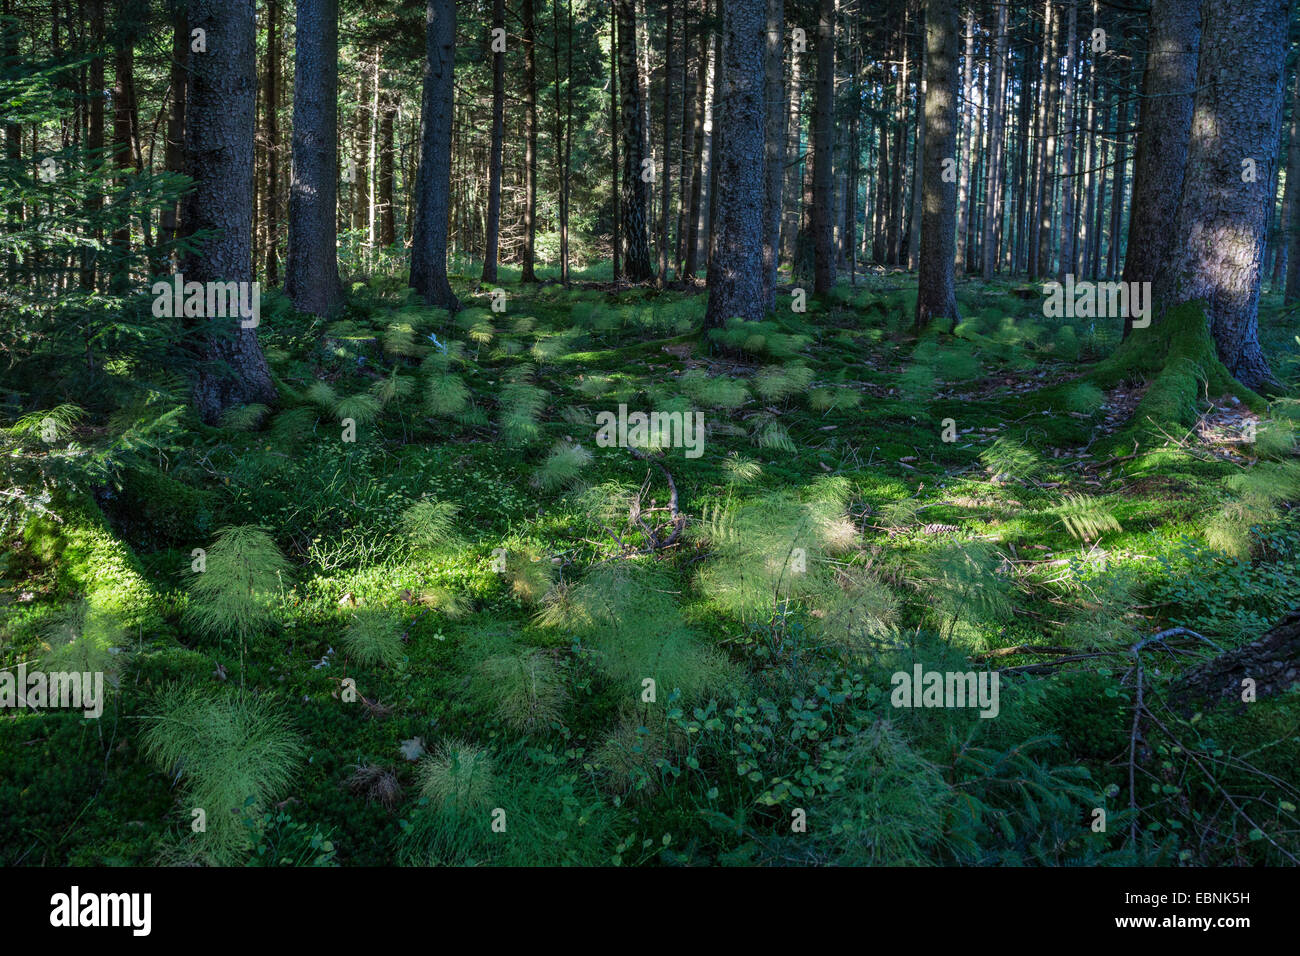 sylvan horsetail, wood horsetail, woodland horsetail (Equisetum sylvaticum), in a forest, Germany, Bavaria - Stock Image